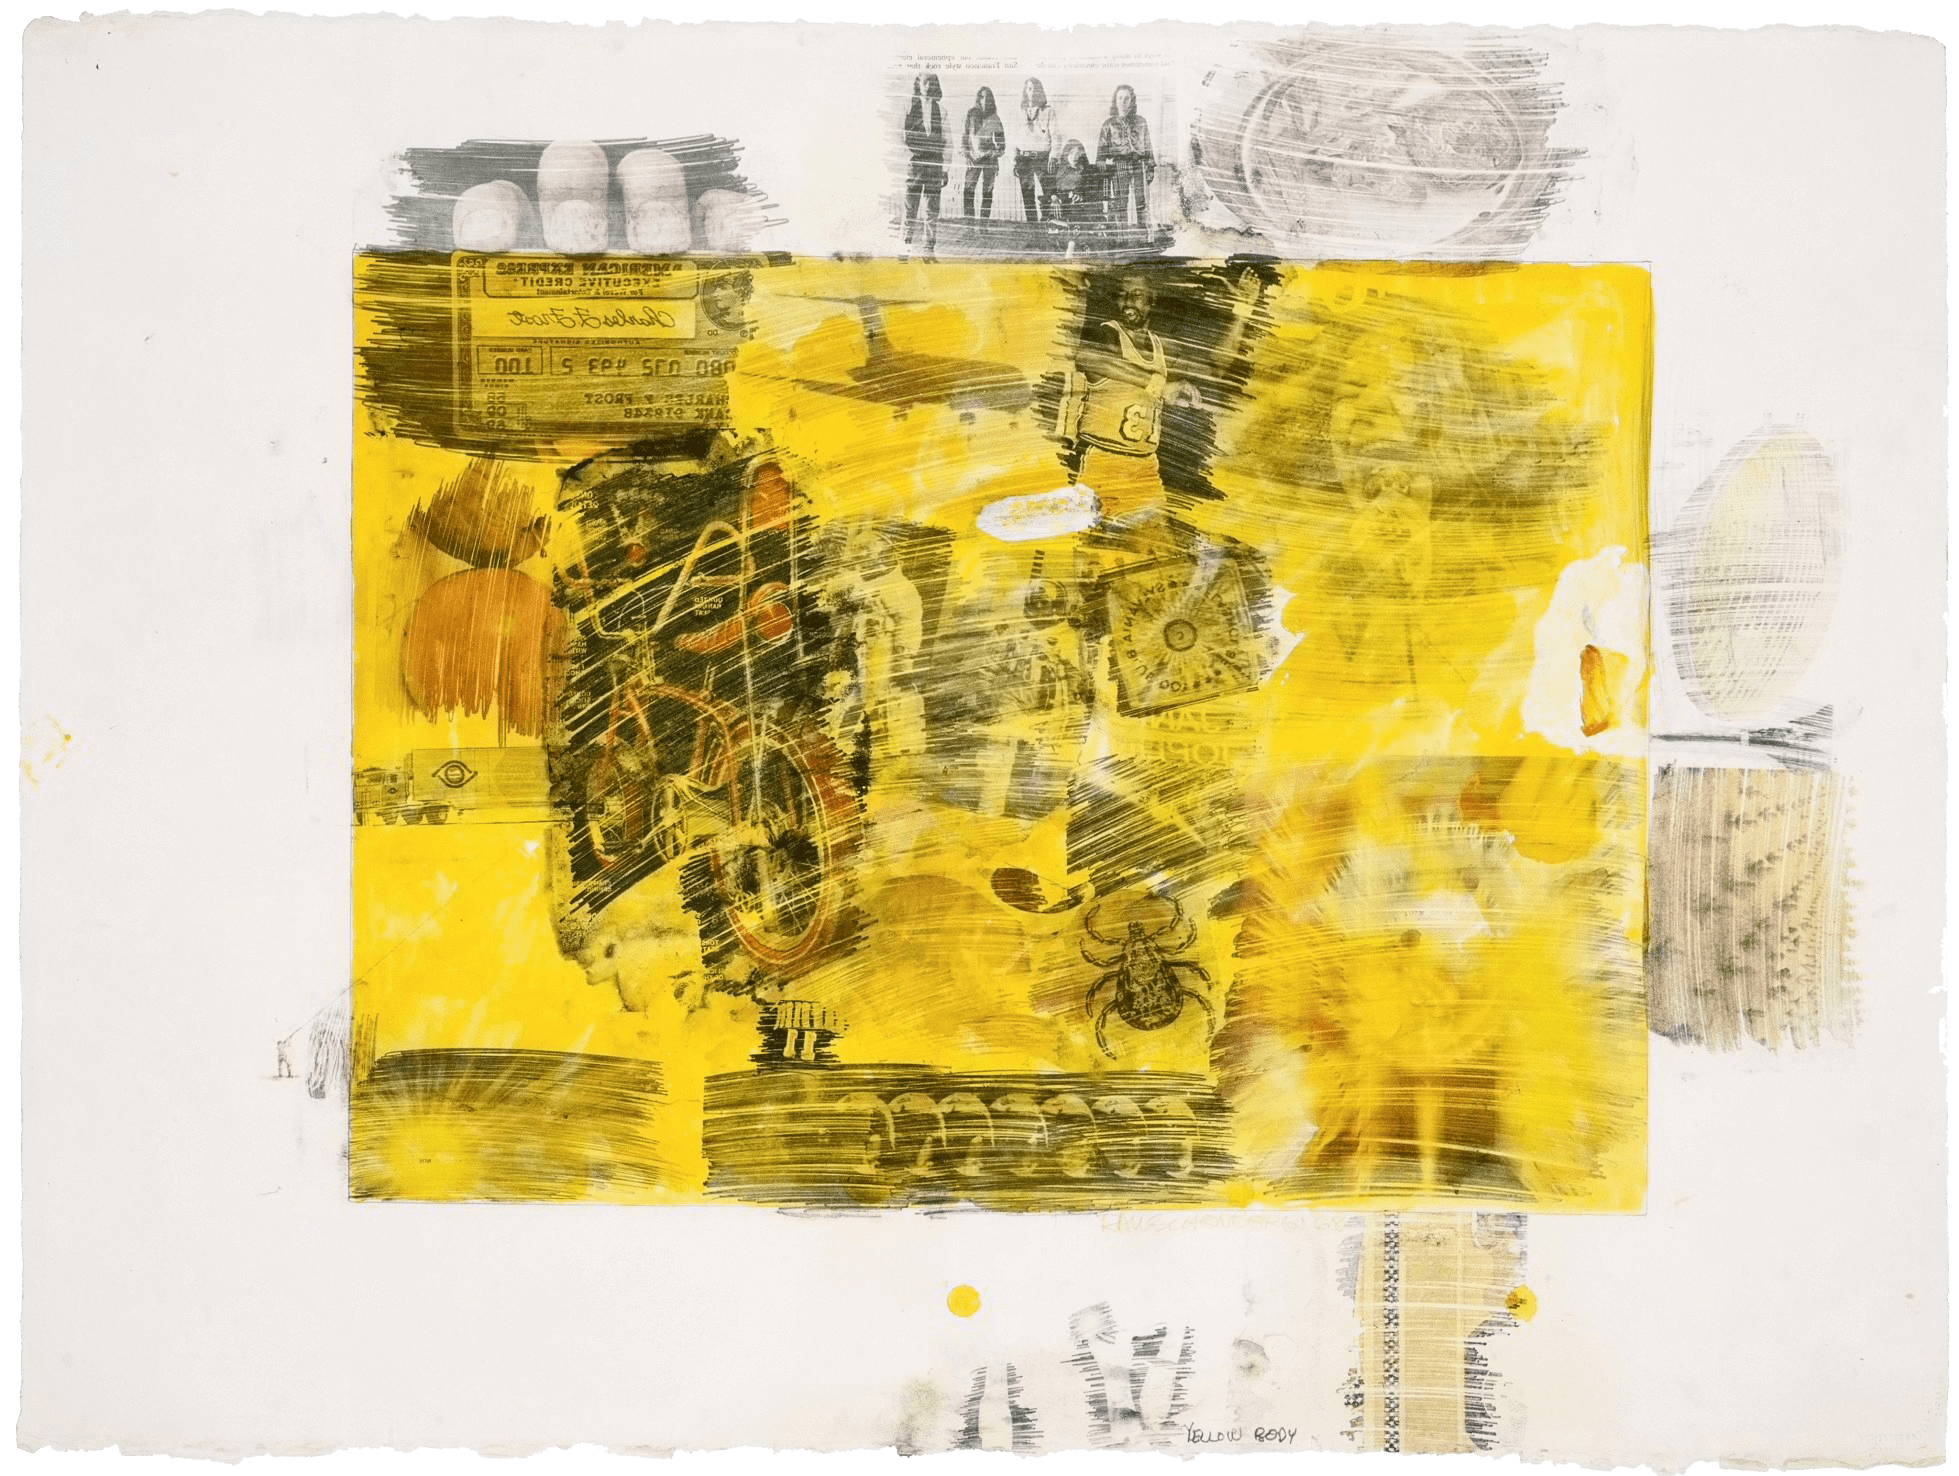 Yellow Body, 1968 — Robert Rauschenberg